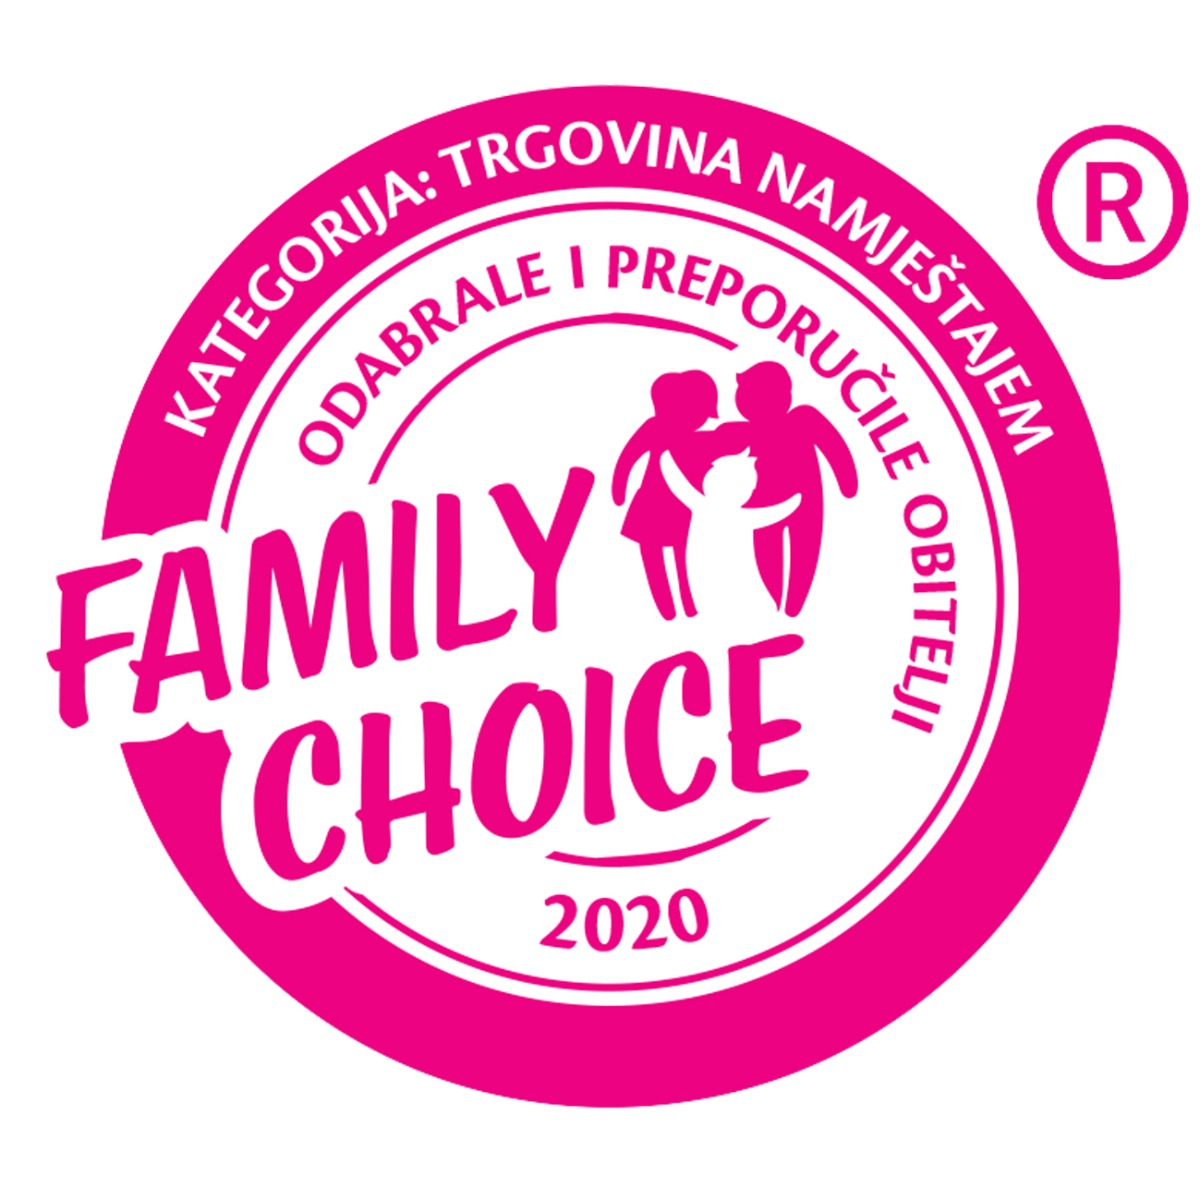 Family choice 2020